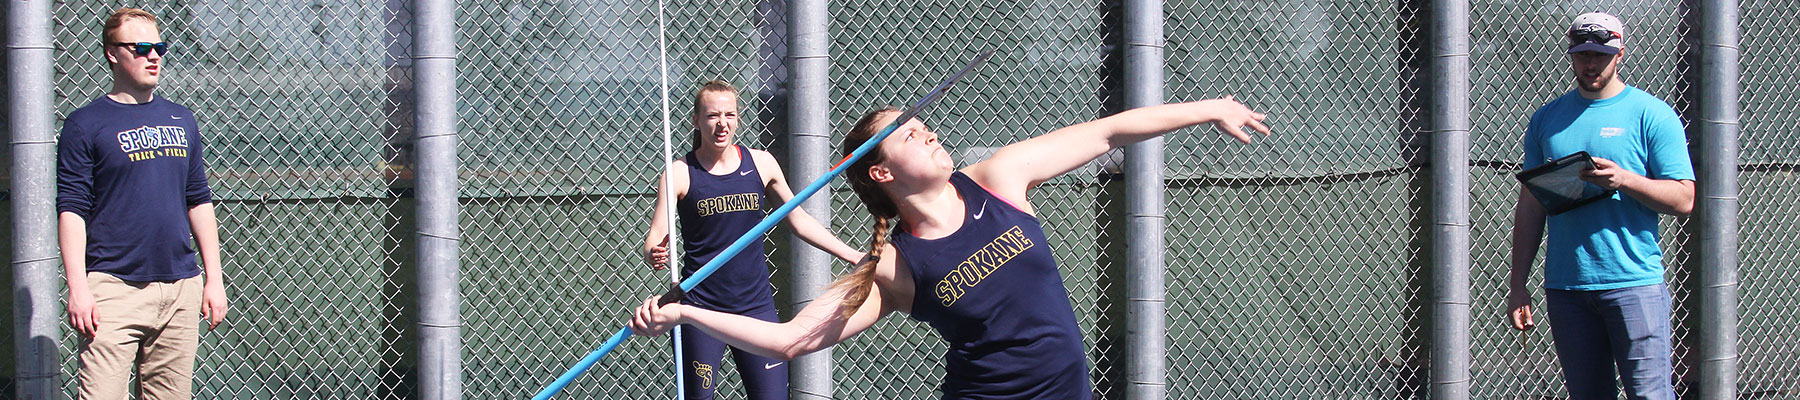 Track and Field Women's Javelin